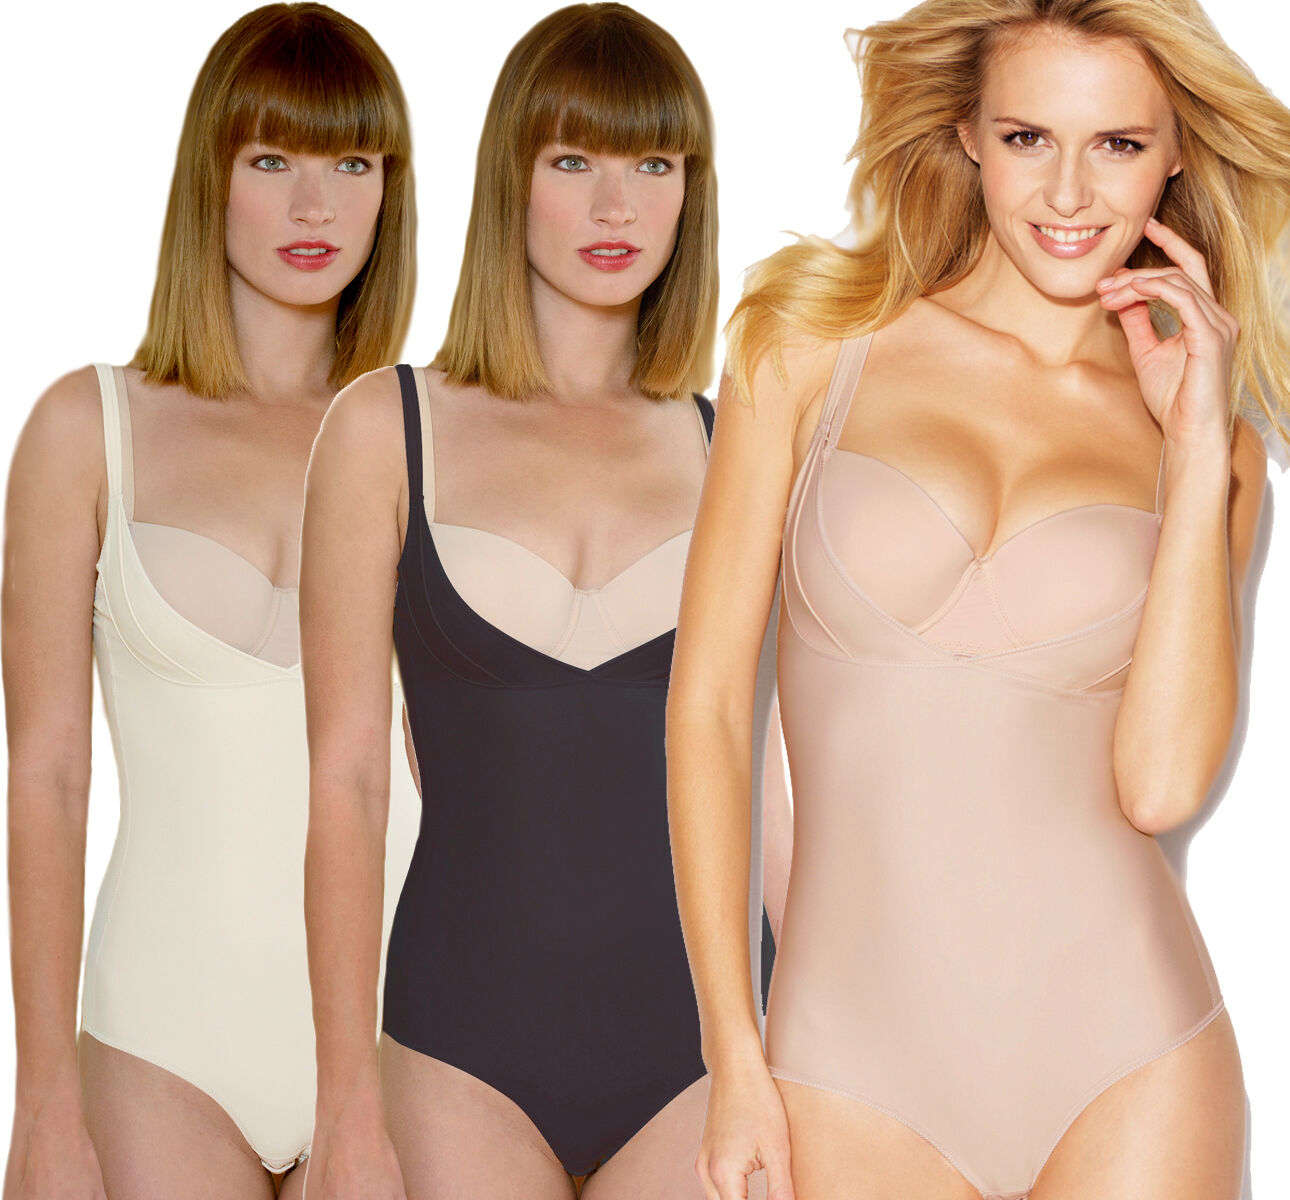 Cybele Shapewear Body mit Push Up Effekt 12390-54 GR. 65 bis 95 in 3 Farben